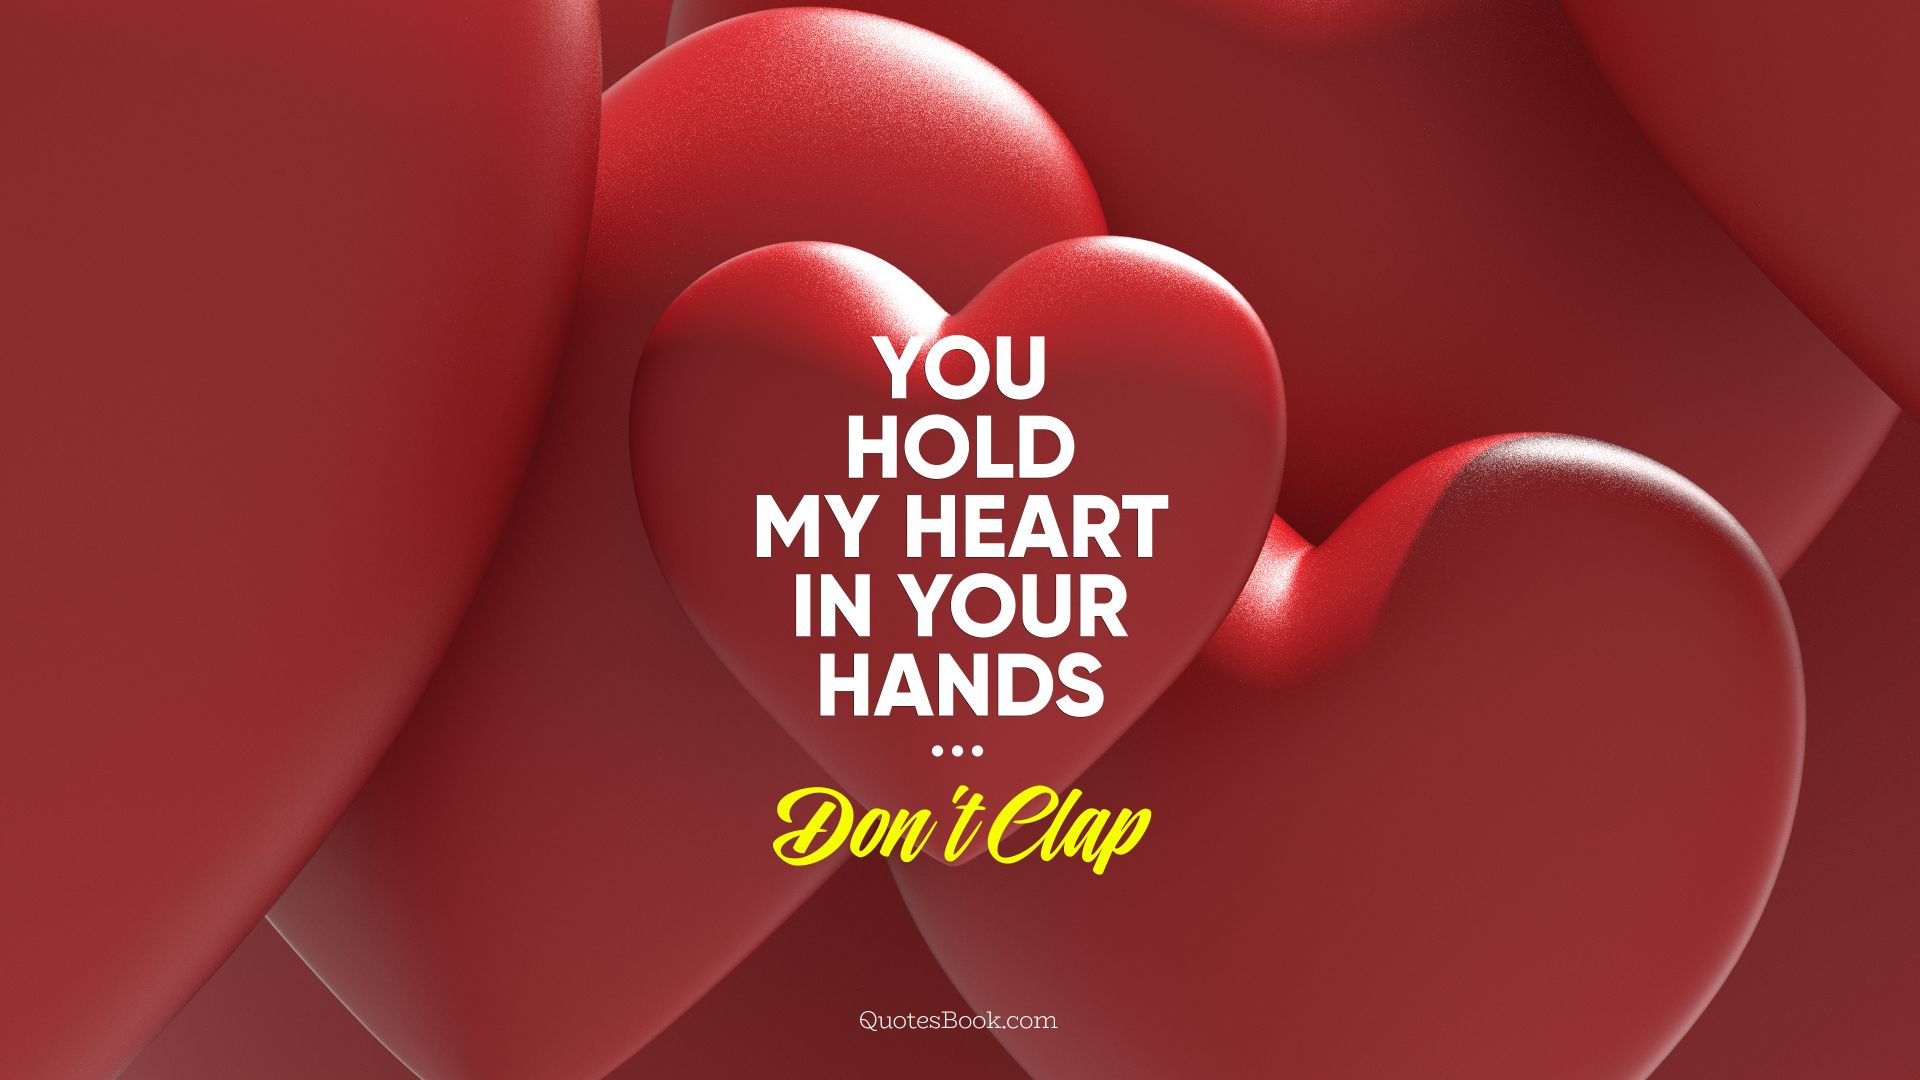 You hold my heart in your hands. Don't clap